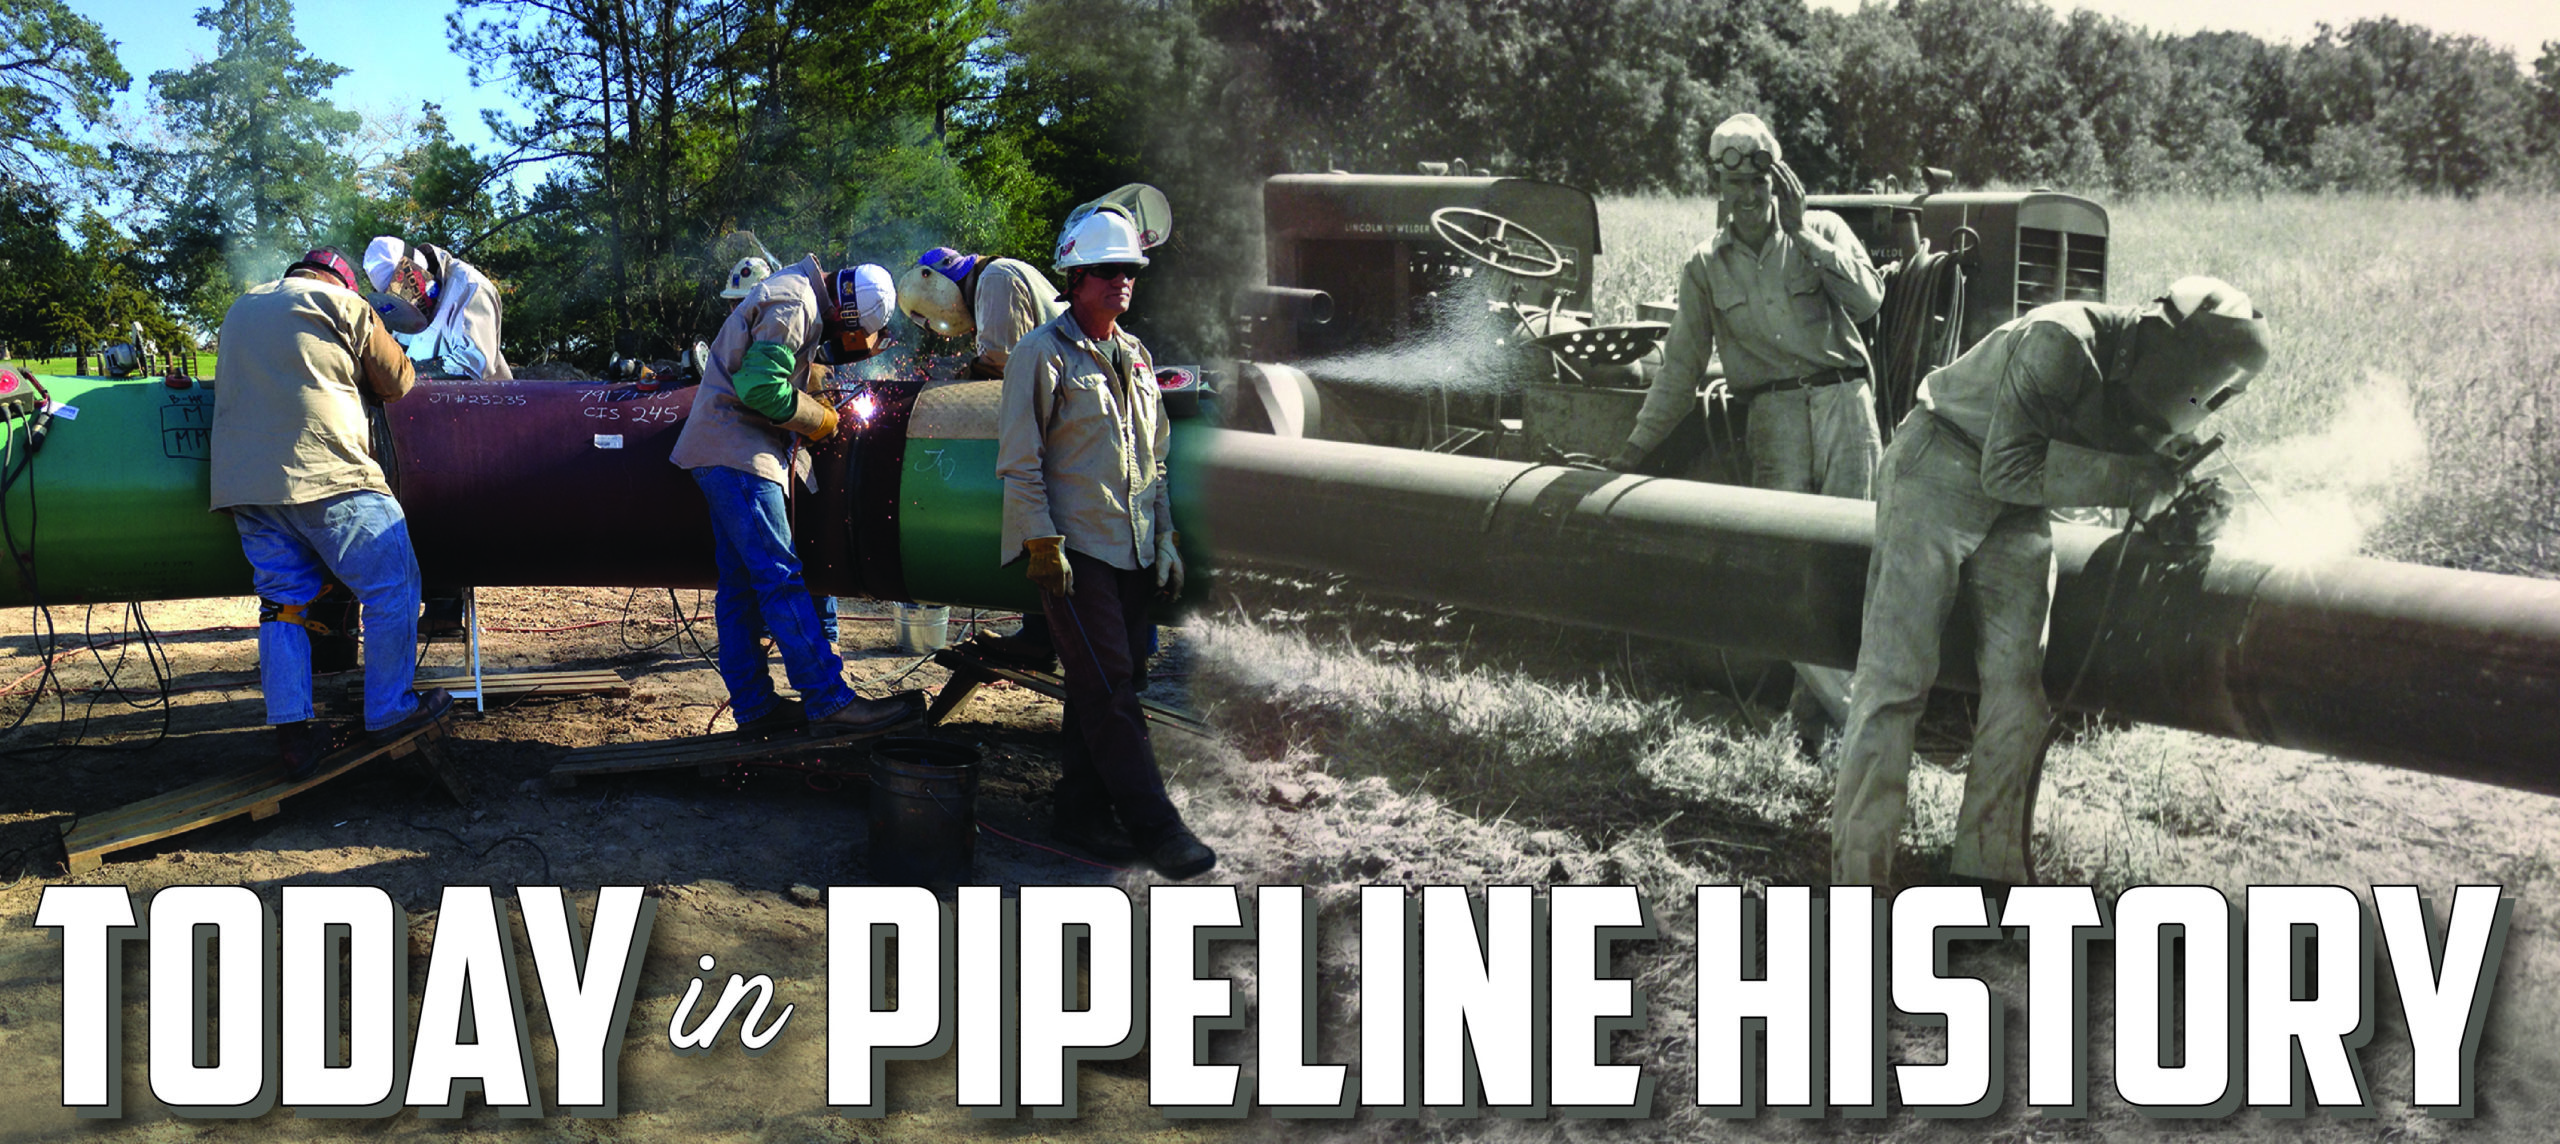 Today in pipeline history